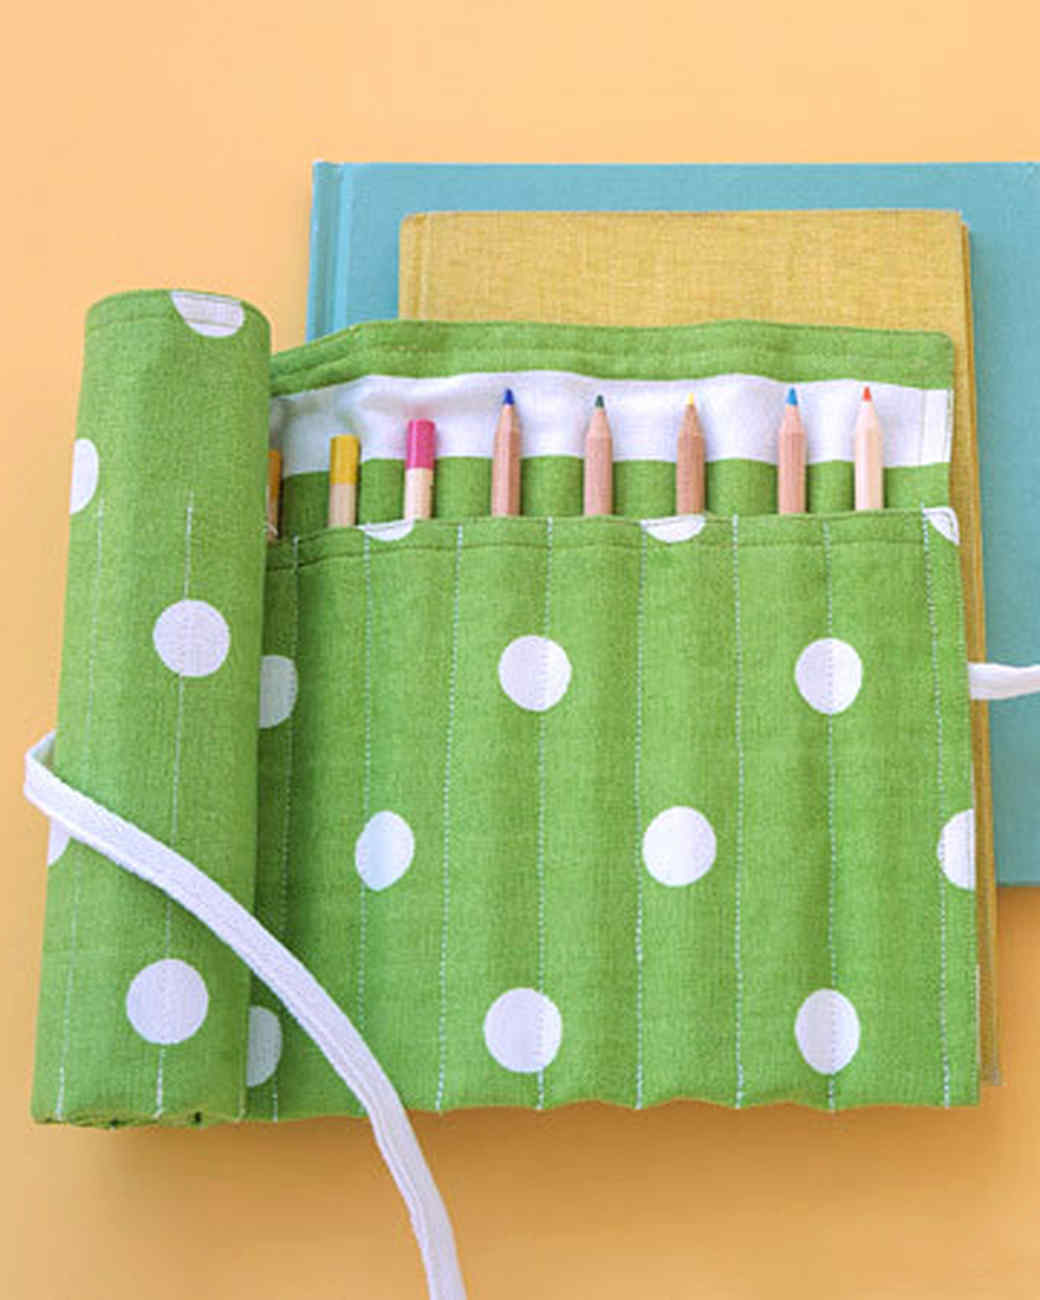 Roll-Up Pencil Kit